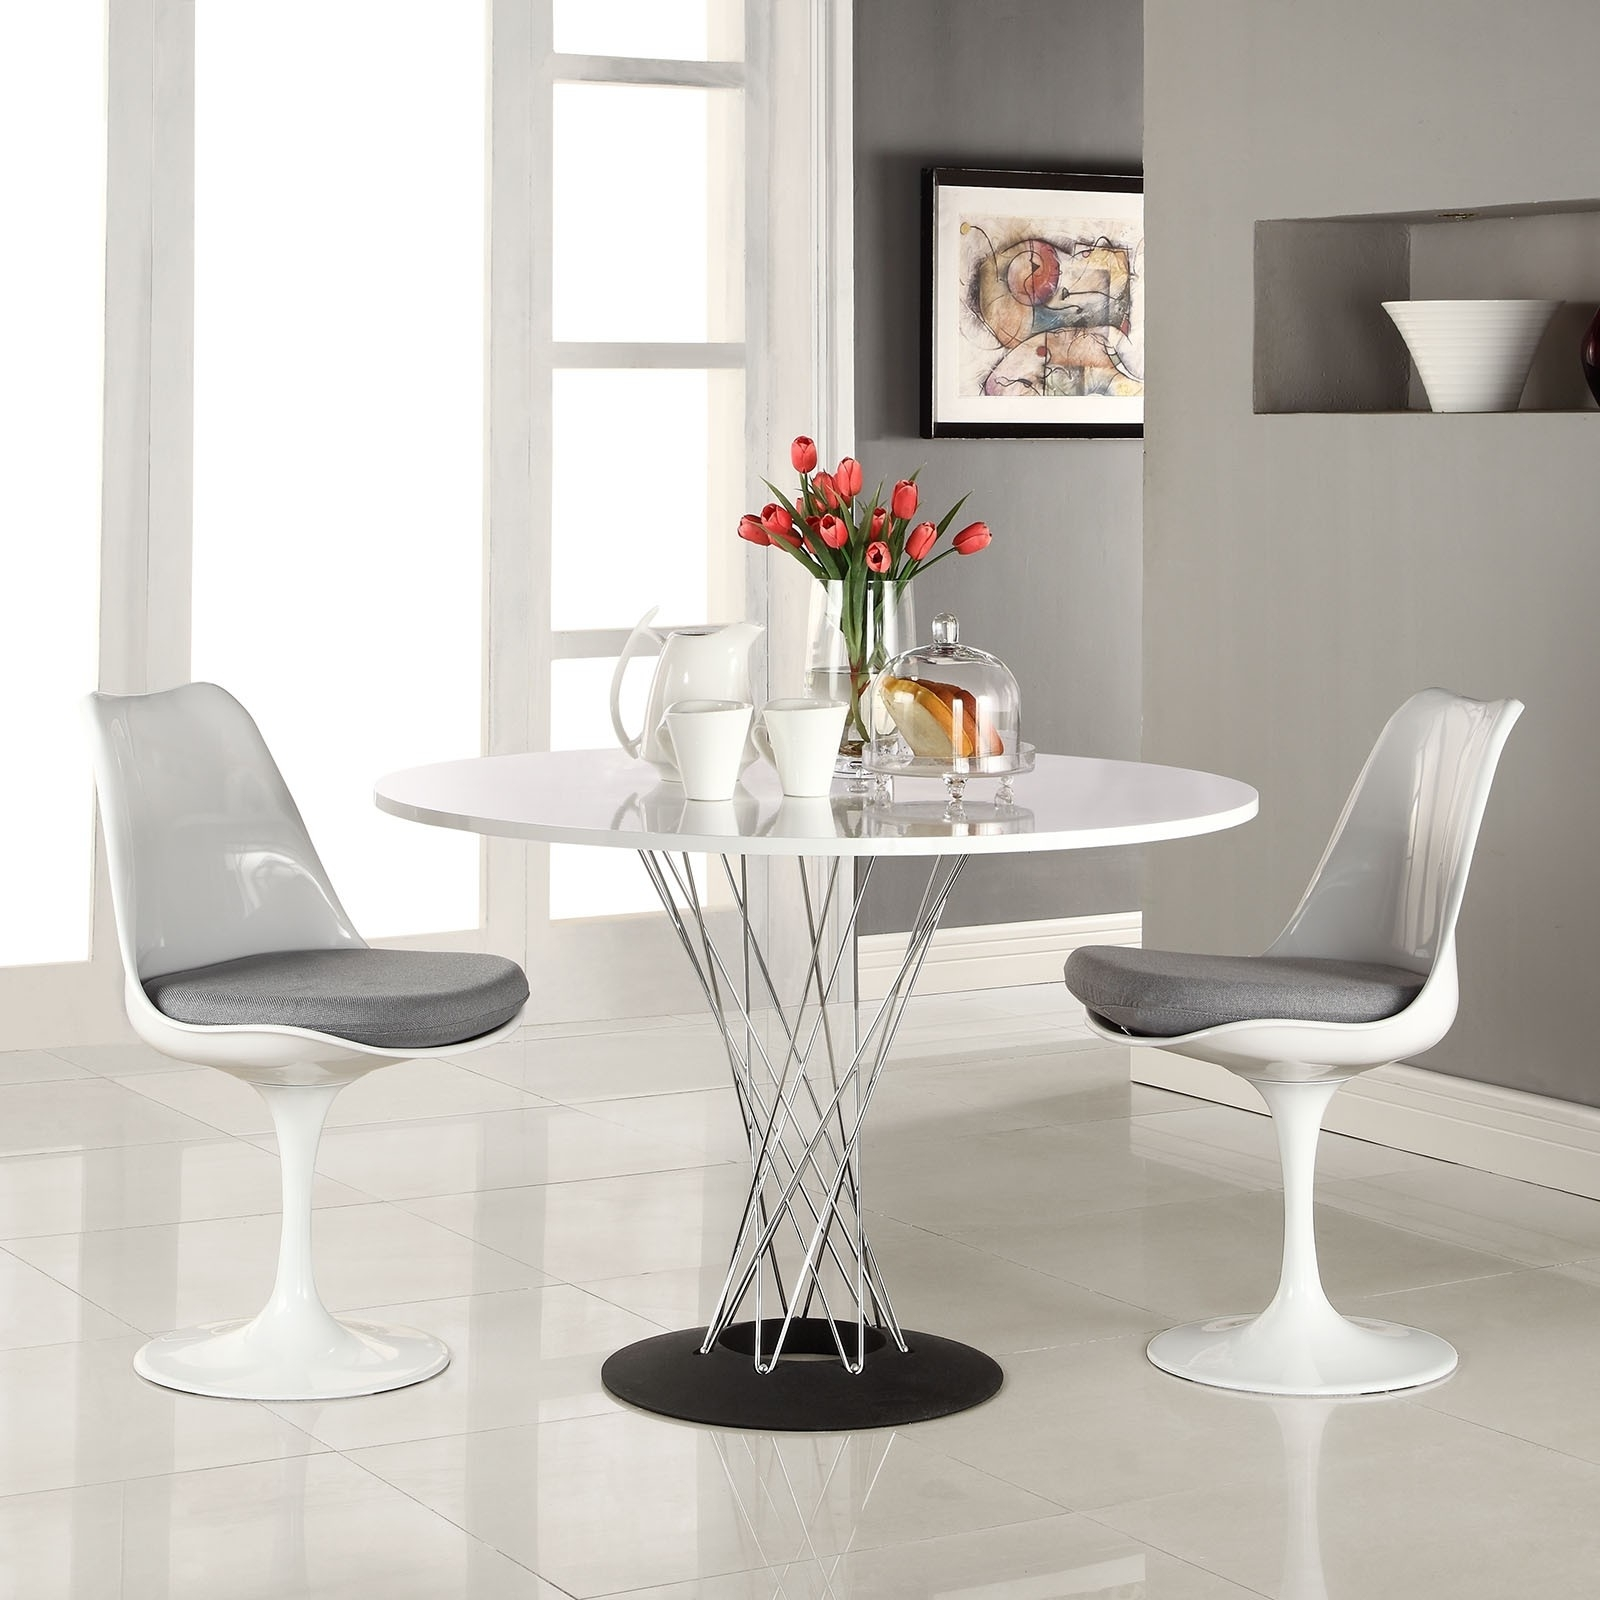 Best And Newest Acrylic Kitchen Table Fresh 15 White Round Table Design Ideas For Pertaining To Acrylic Round Dining Tables (View 12 of 25)